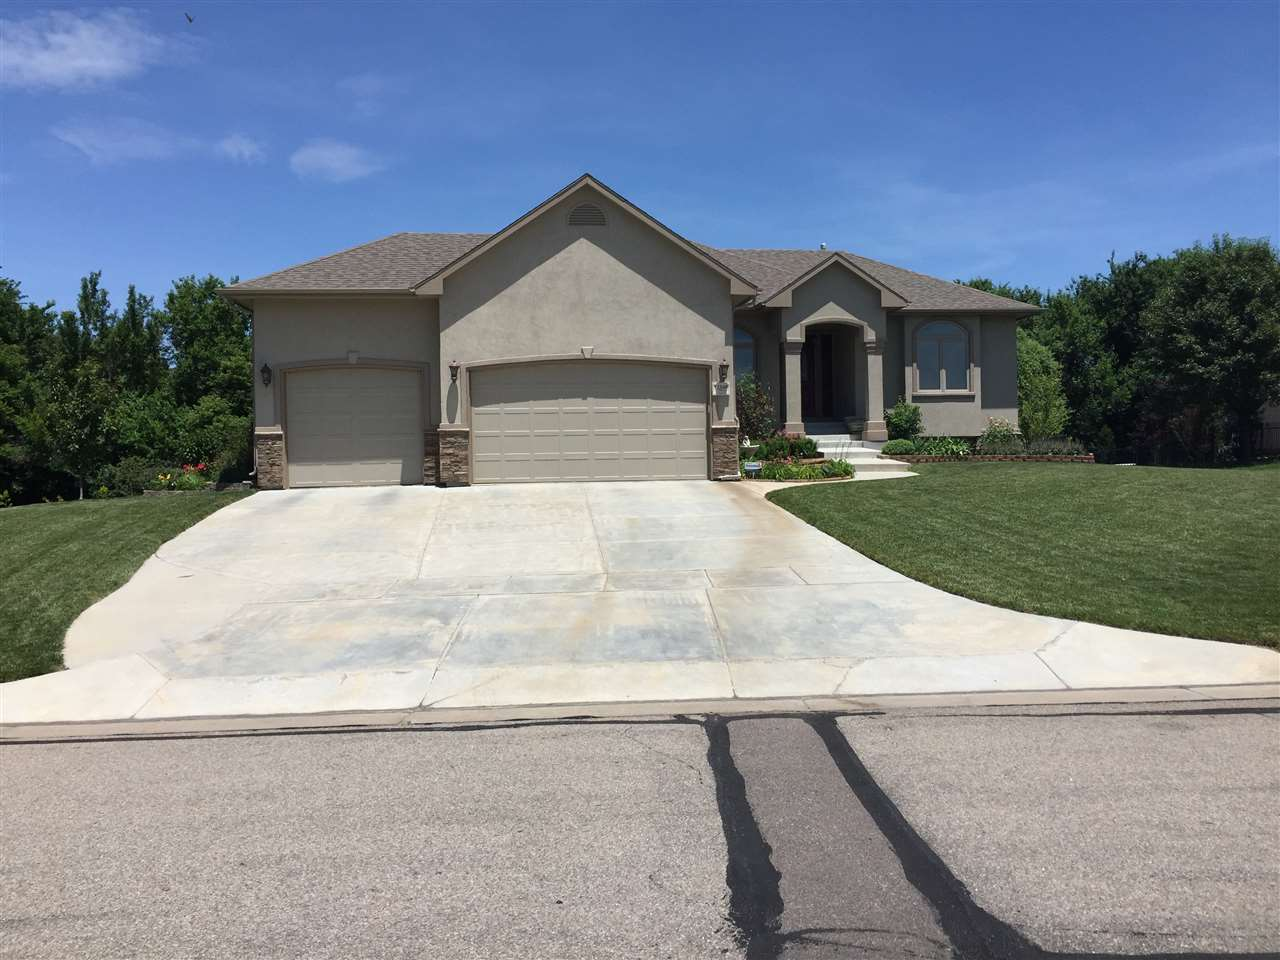 12548 E Killarney, Wichita, KS 67206